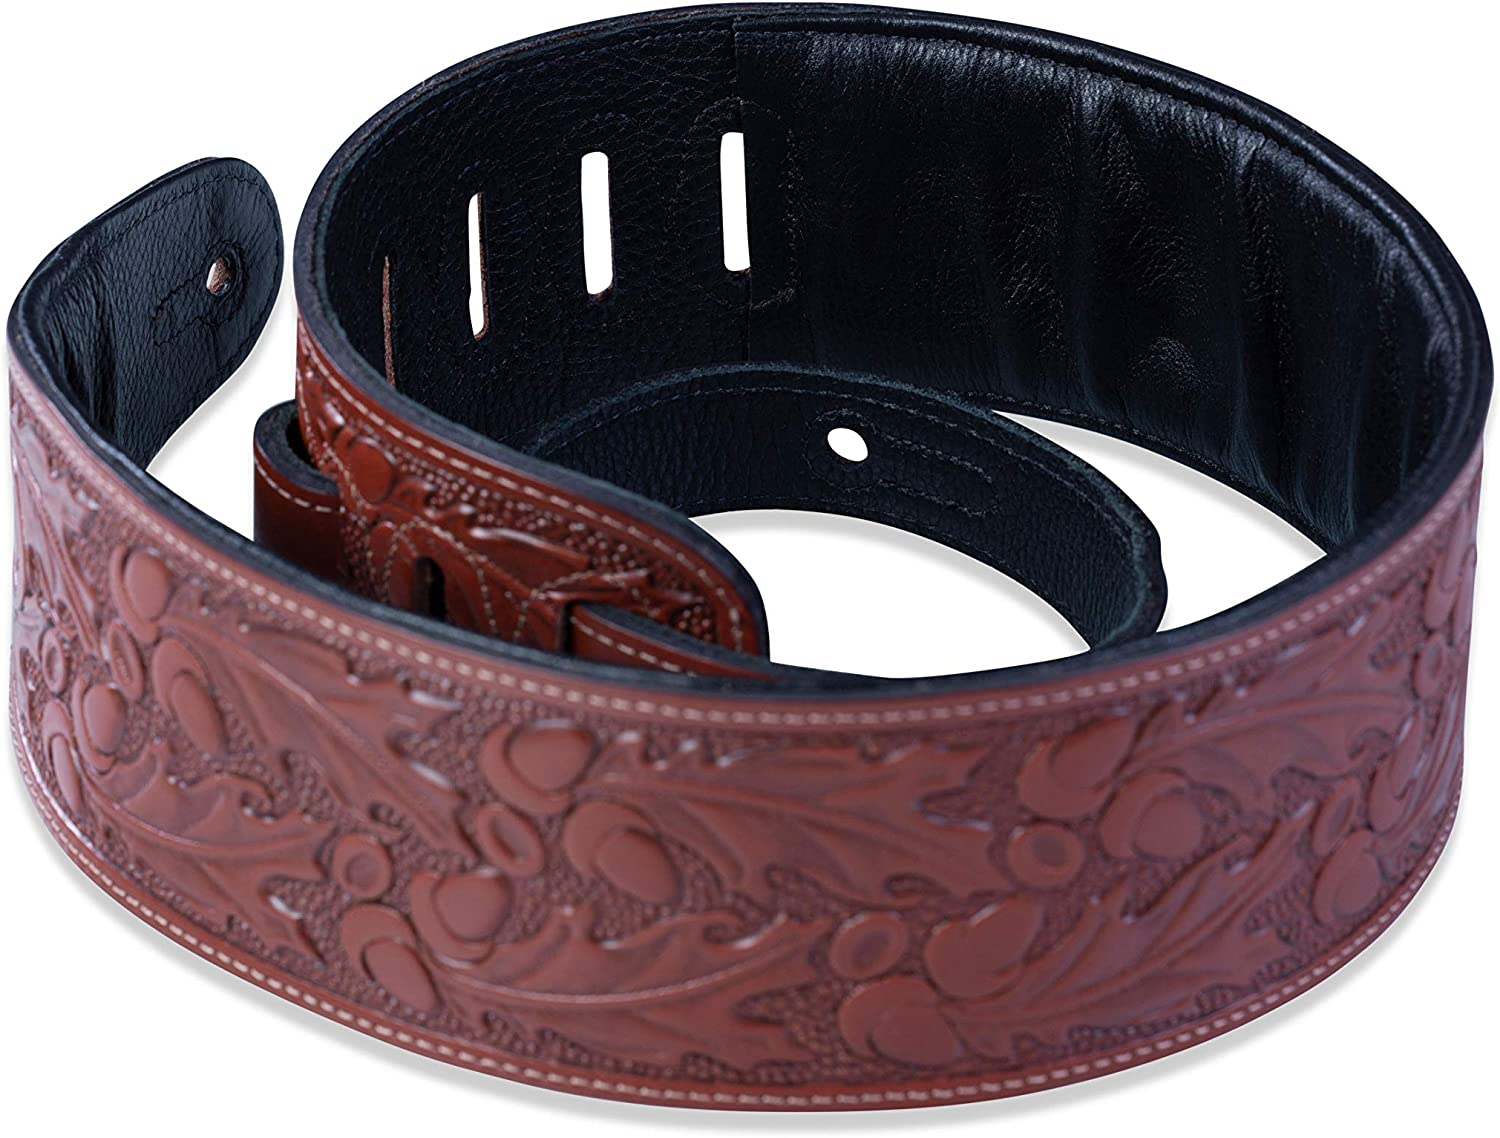 Levys Leathers 3 Padded Veg-Tan Leather Leather Guitar Strap; Acorn and Oak Leaves Design PM44T01-BLK Black